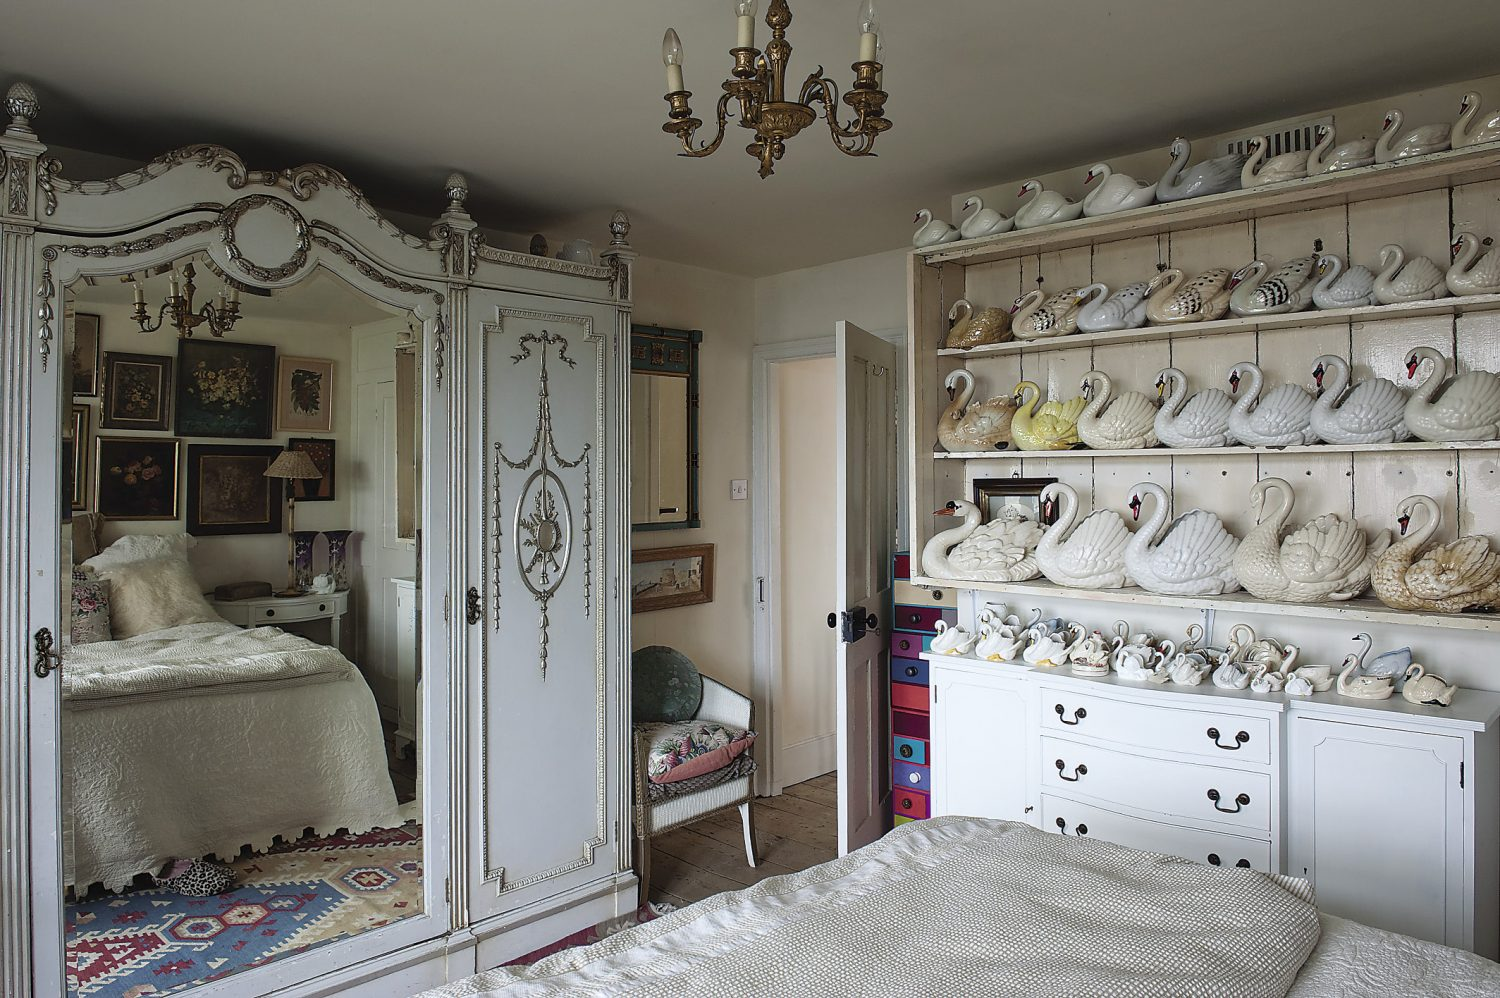 A huge mirror in the centre of the magnificent white and gold French wardrobe reflects light back into the room. Rows of vintage china swans are lined proudly on shelving: just a small proportion of Helen's huge collection